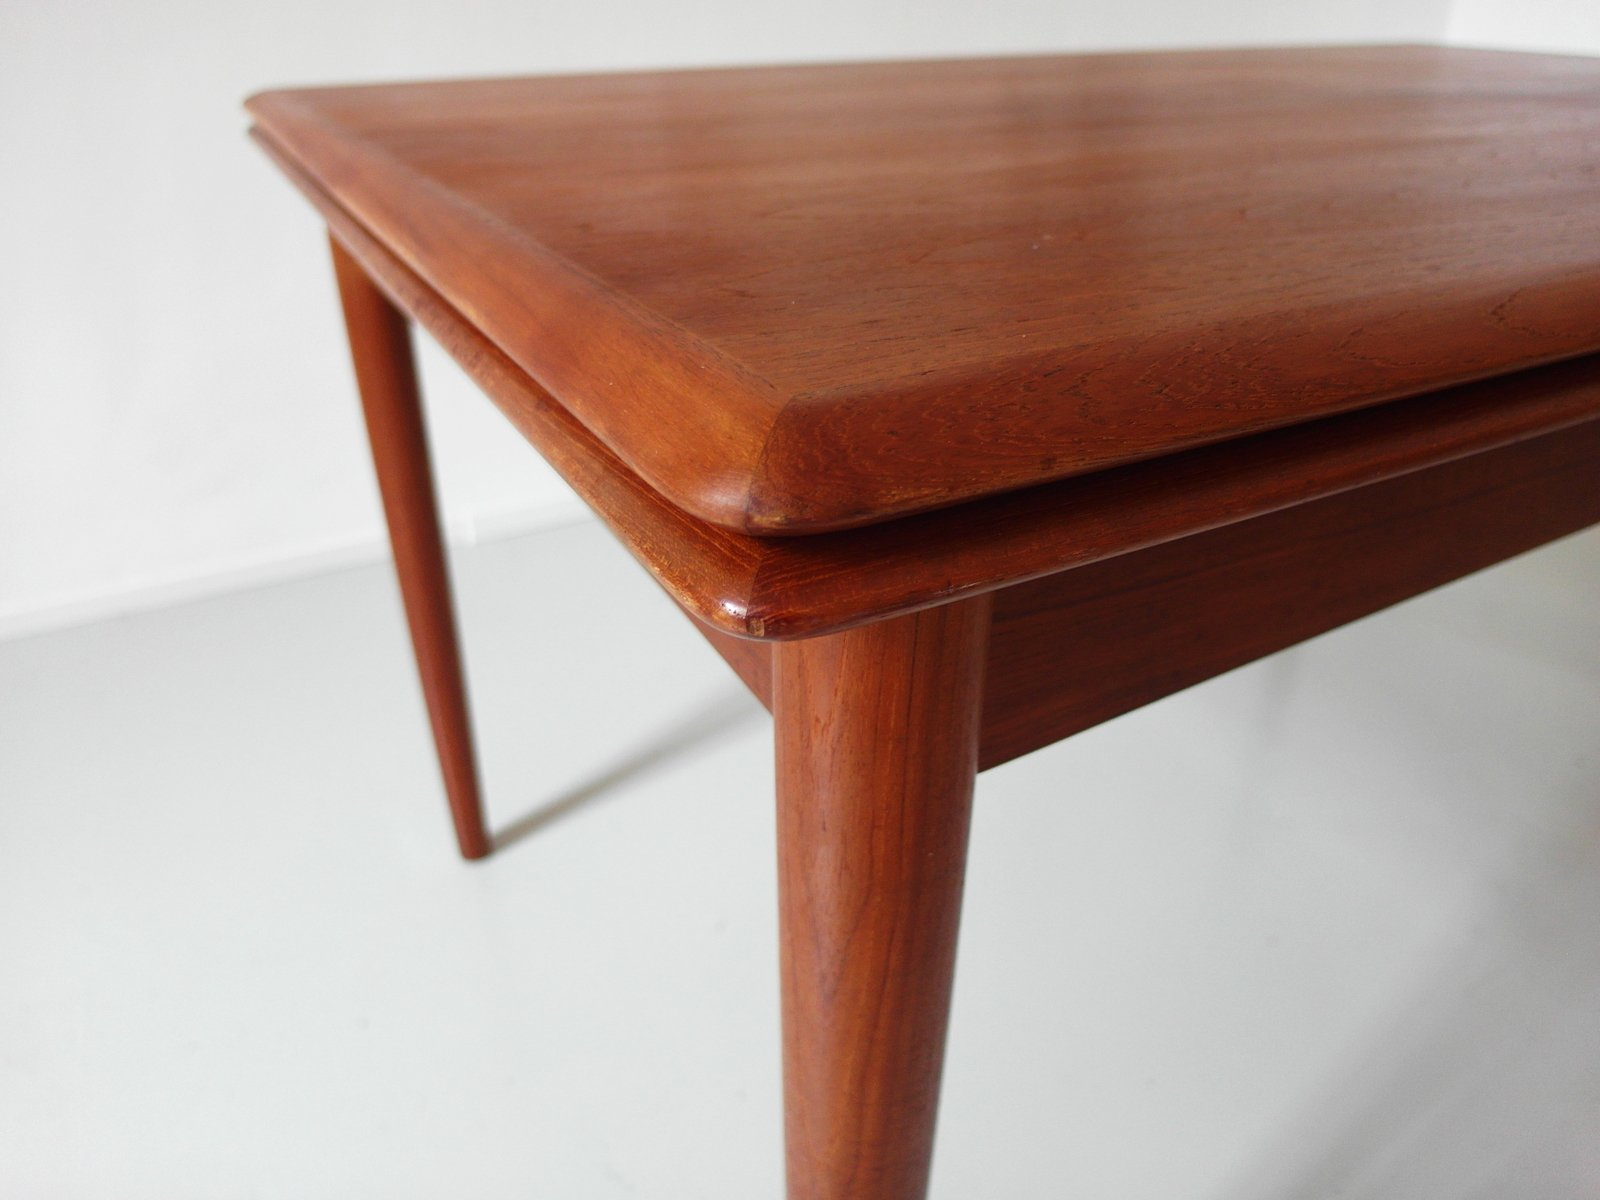 Danish Teak Dining Table From Dyrlund 1960s For Sale At Pamono